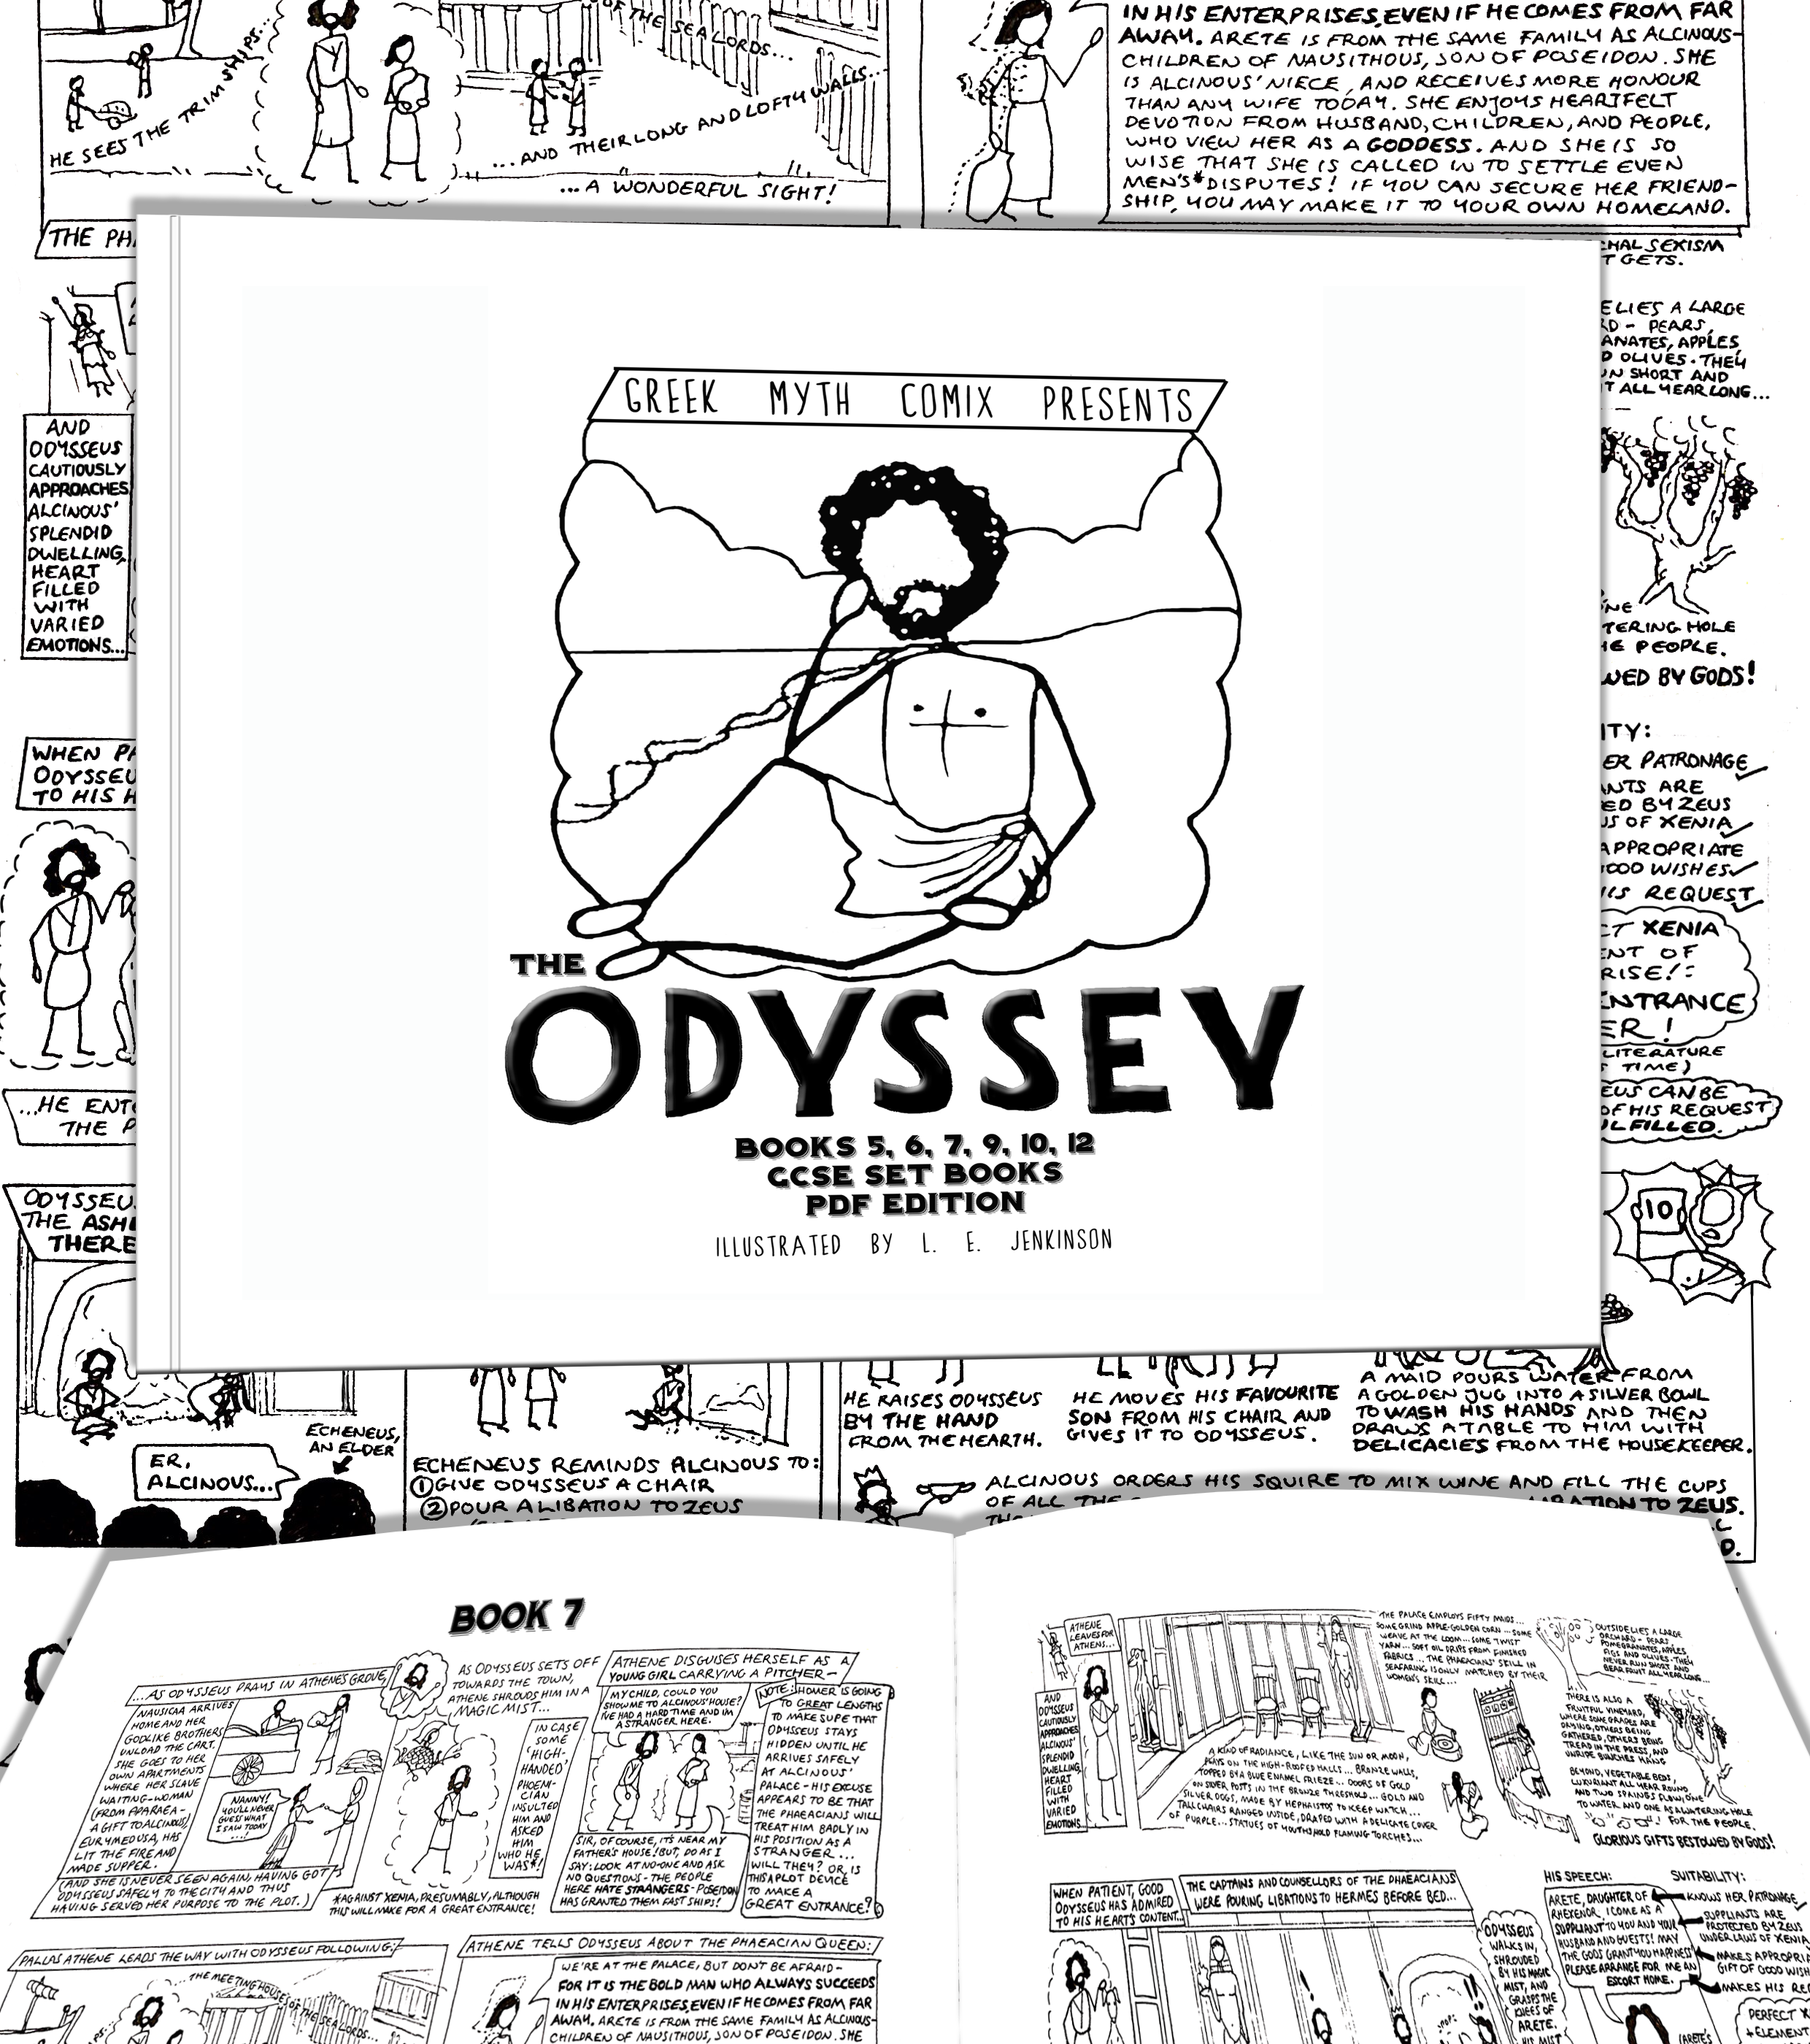 odyssey and troy essay He is famous for the epic poems the iliad and the odyssey, which have  in the  greek genius and its influence: select essays and extracts in 1917,  with the  plain of troy, due to the geographical accuracy in the poem.